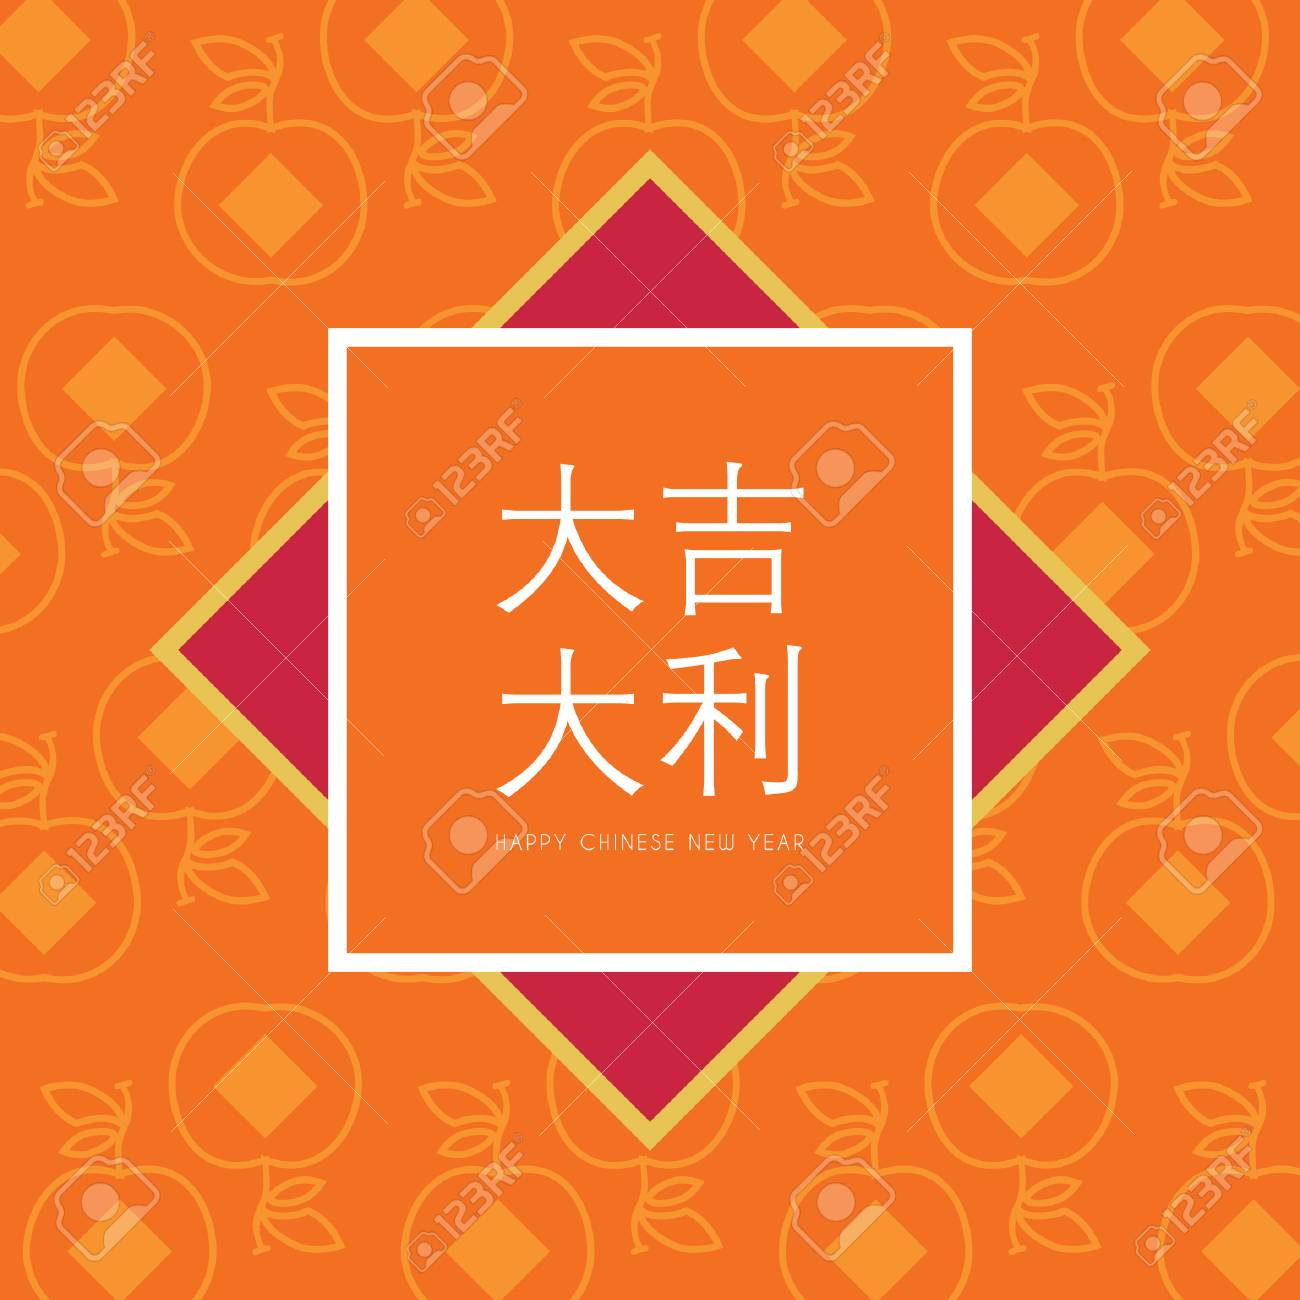 chinese new year pattern symbol or icon of tangerine or citrus fruit with chinese new